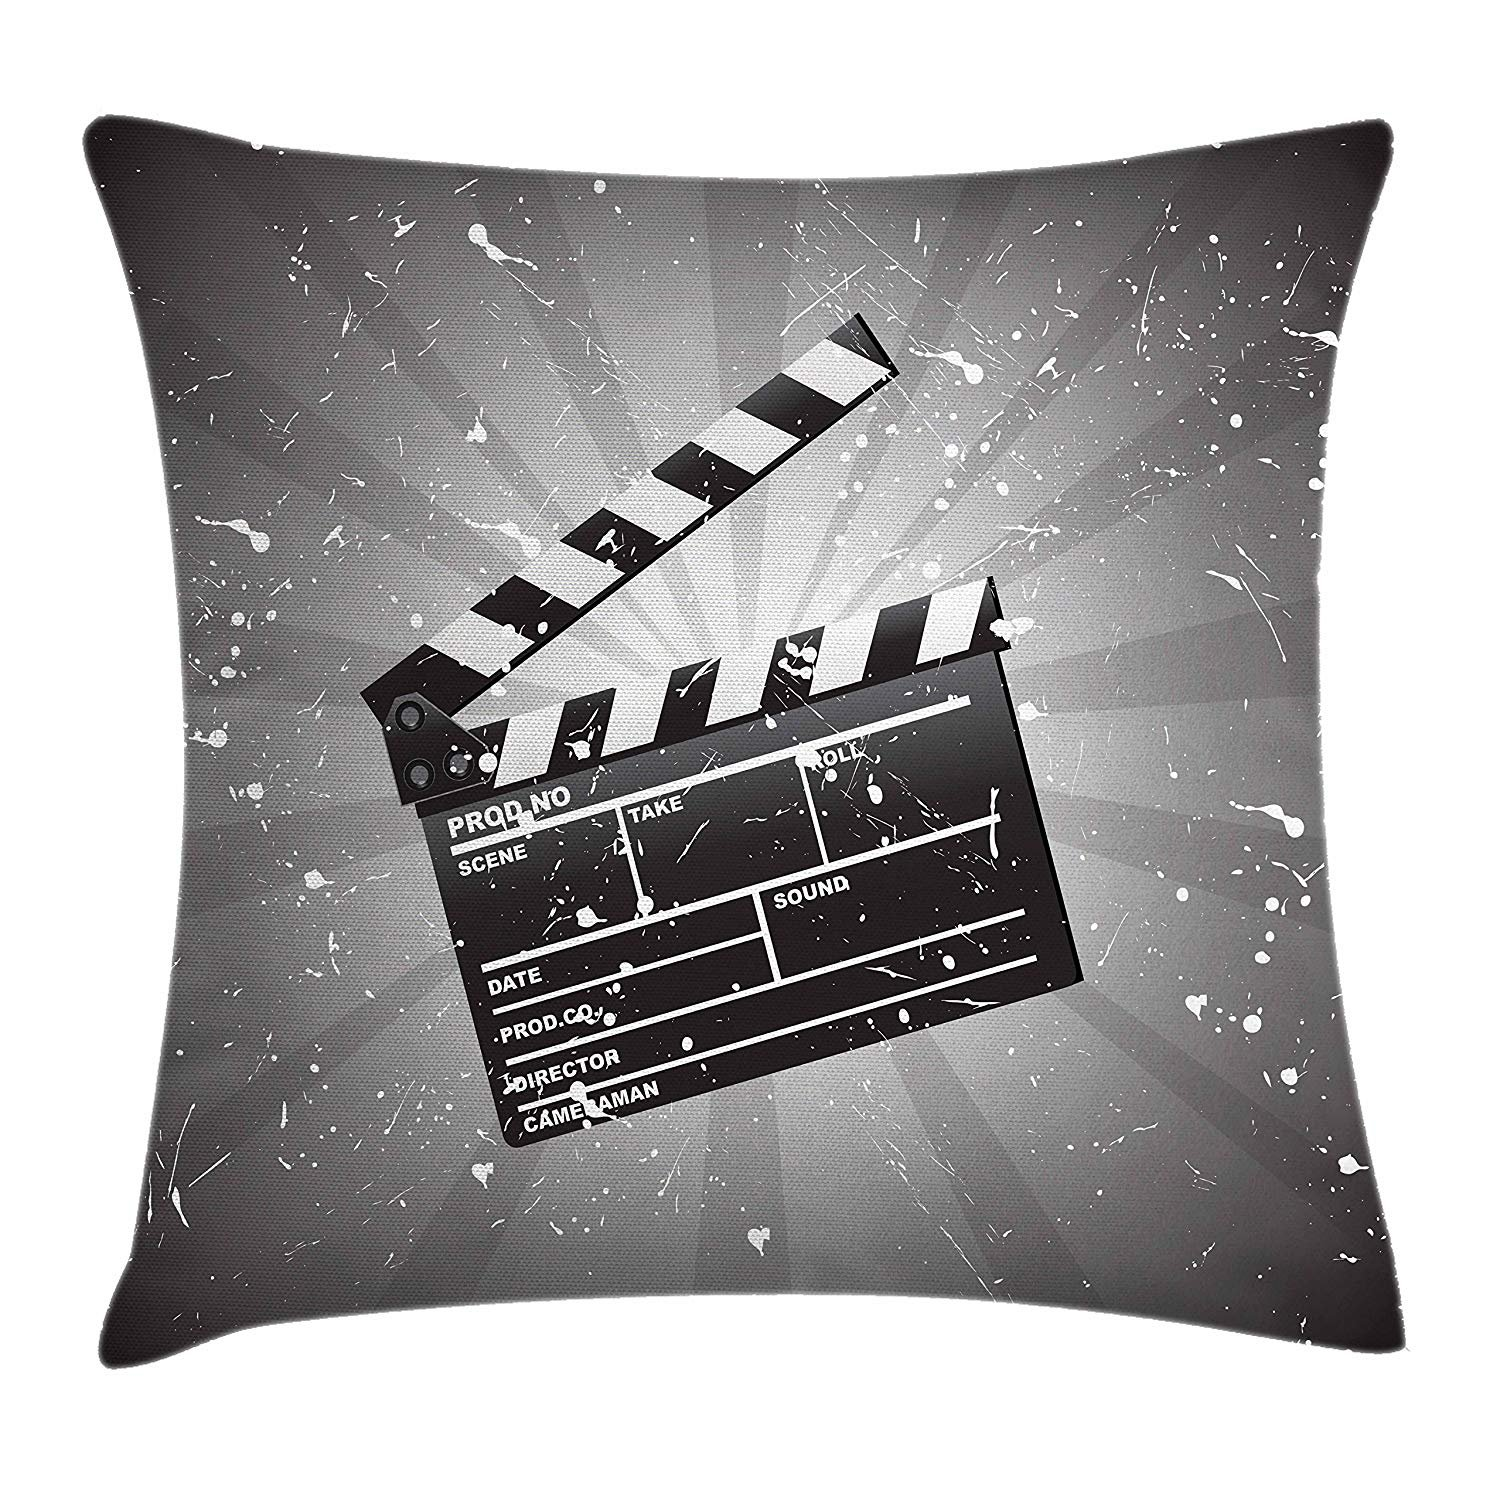 Queen Area Movie Theater Clapper Board on Retro Backdrop with Grunge Effect Director Cut Scene Square Throw Pillow Covers Cushion Case for Sofa Bedroom Car 18x18 Inch, Grey Black White